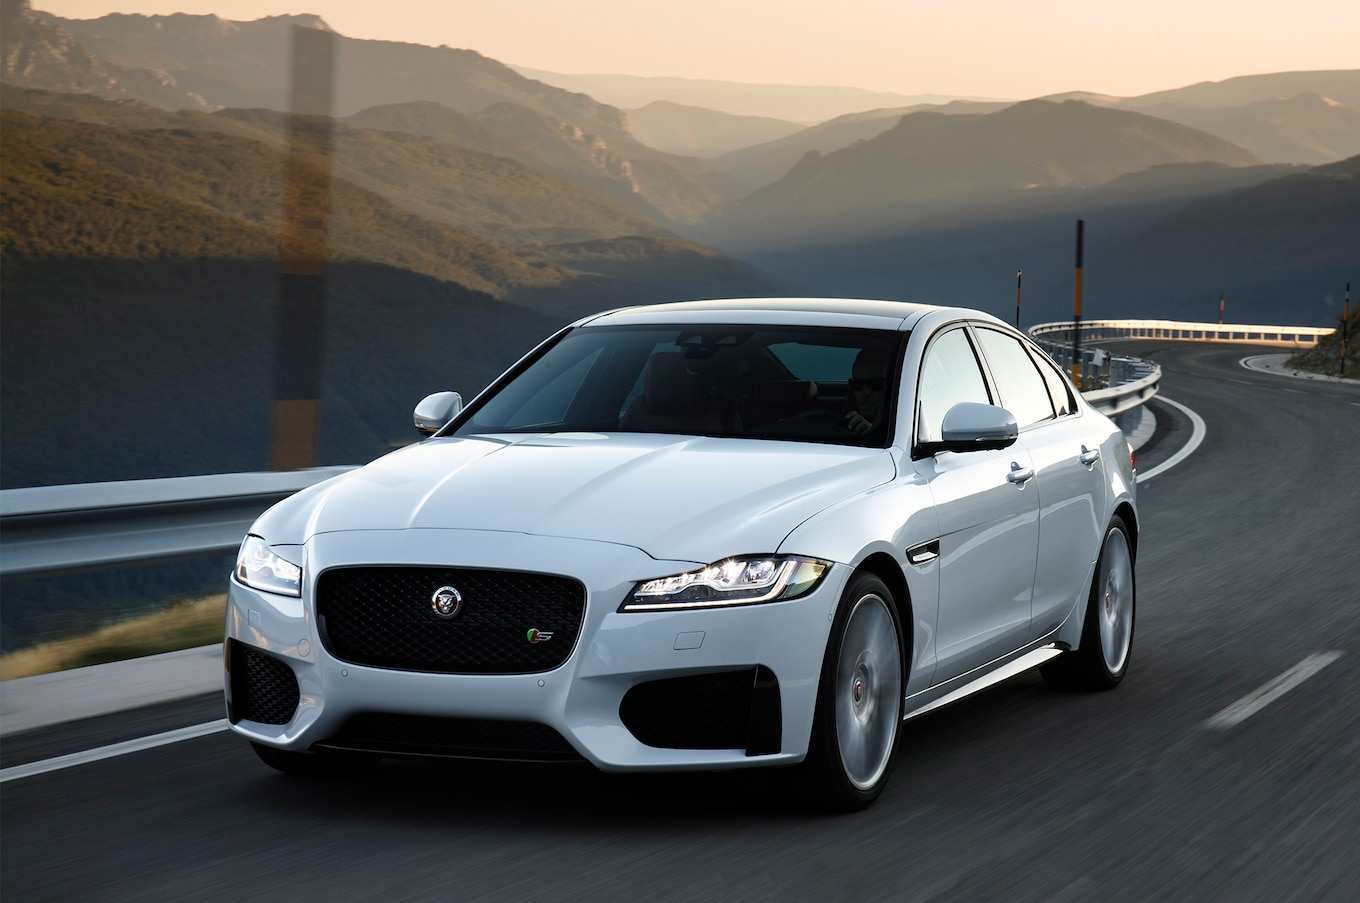 92 Gallery of Jaguar Xf 2020 Concept for Jaguar Xf 2020